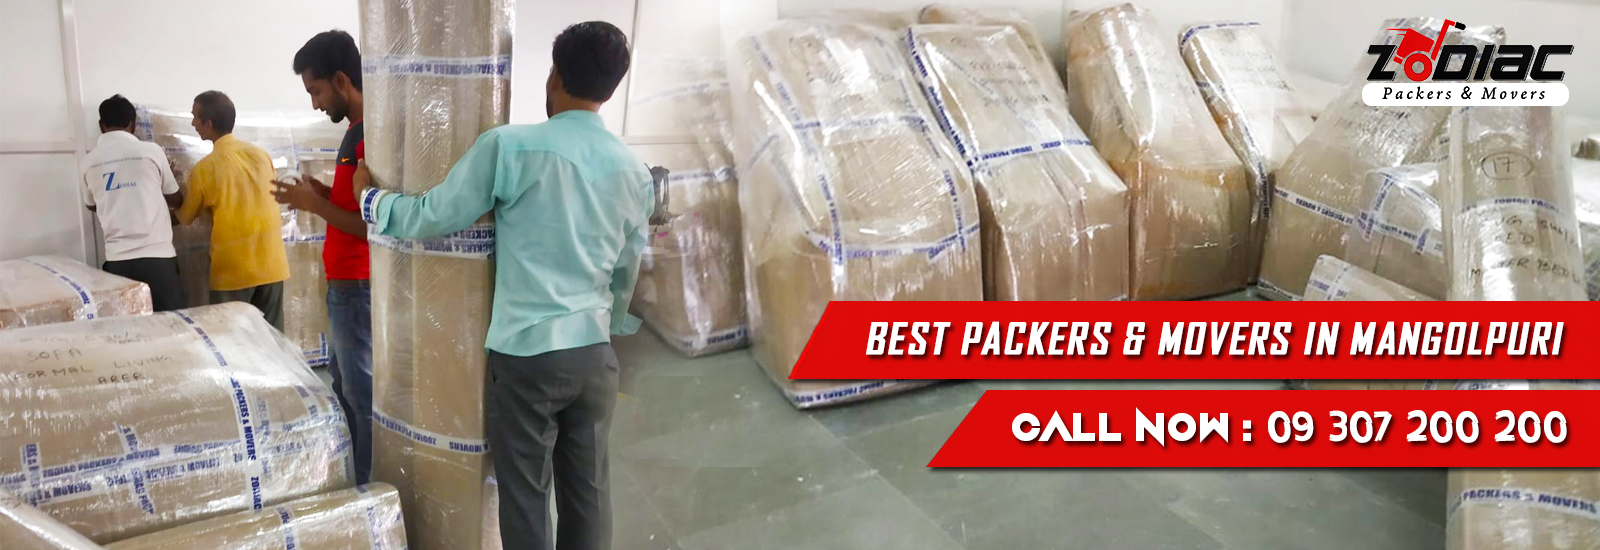 Packers and Movers in Mangolpuri